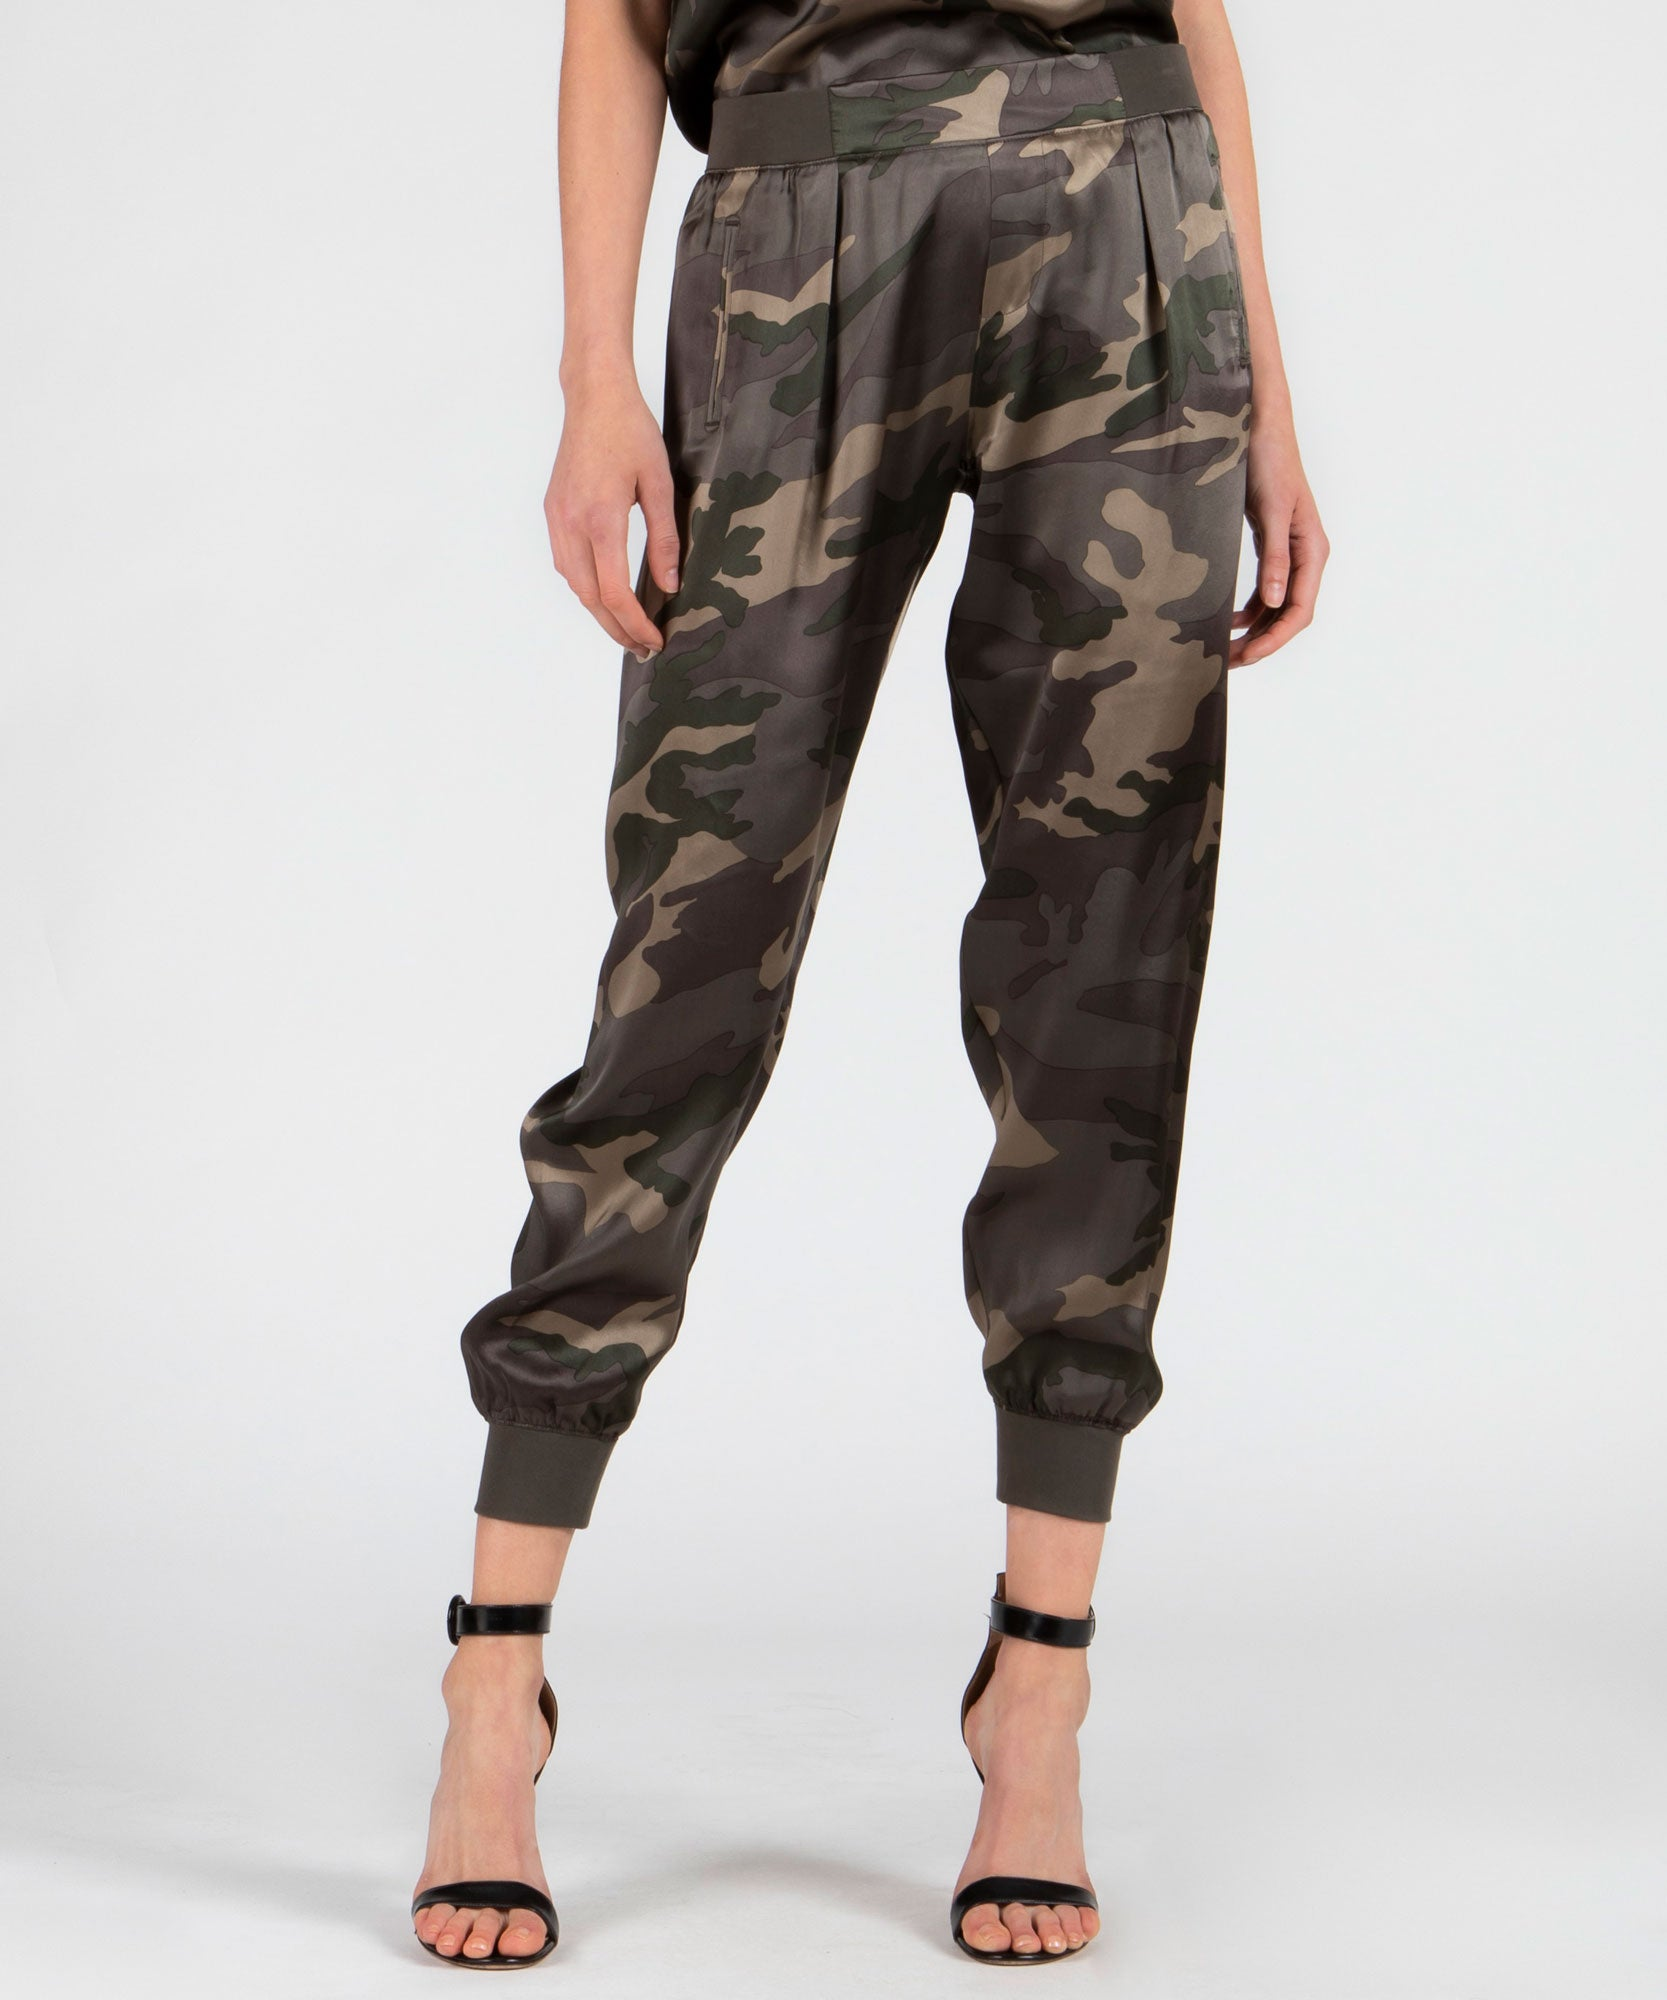 Jungle Camo Silk Sweatpants - Women's Silk Pants by ATM Anthony Thomas Melillo